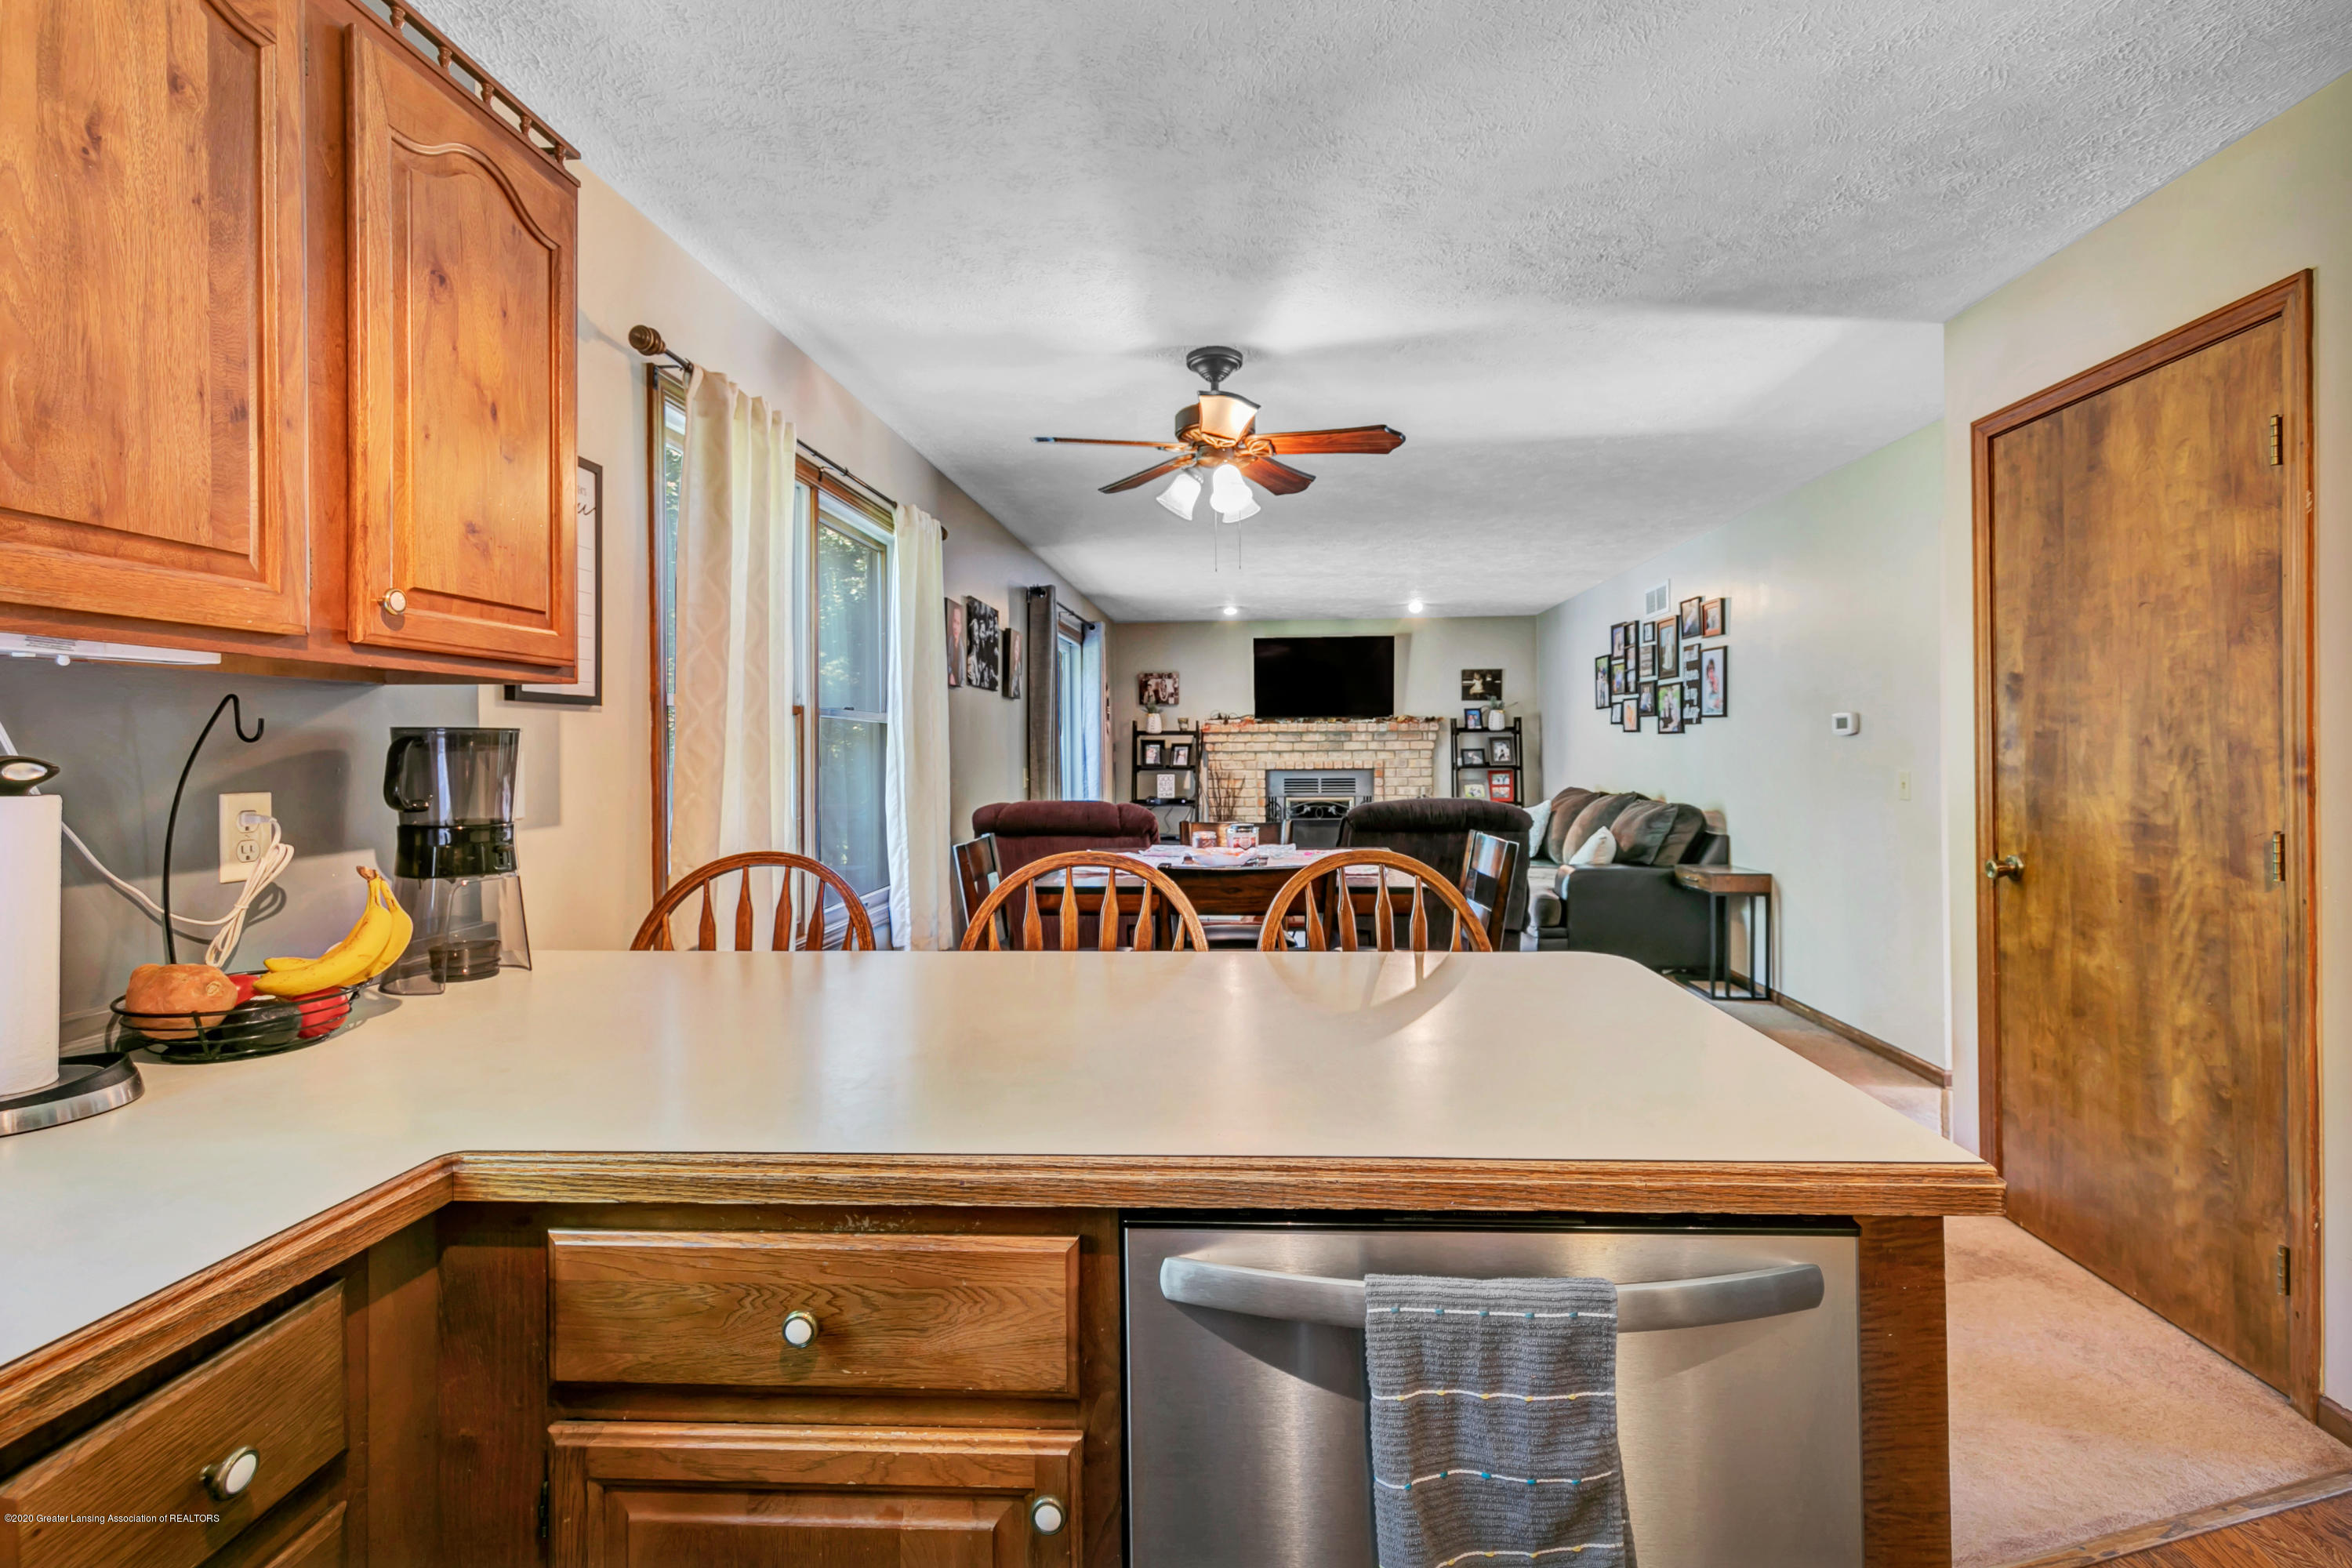 1301 Timber Creek Dr - 9I3A2520 - 15